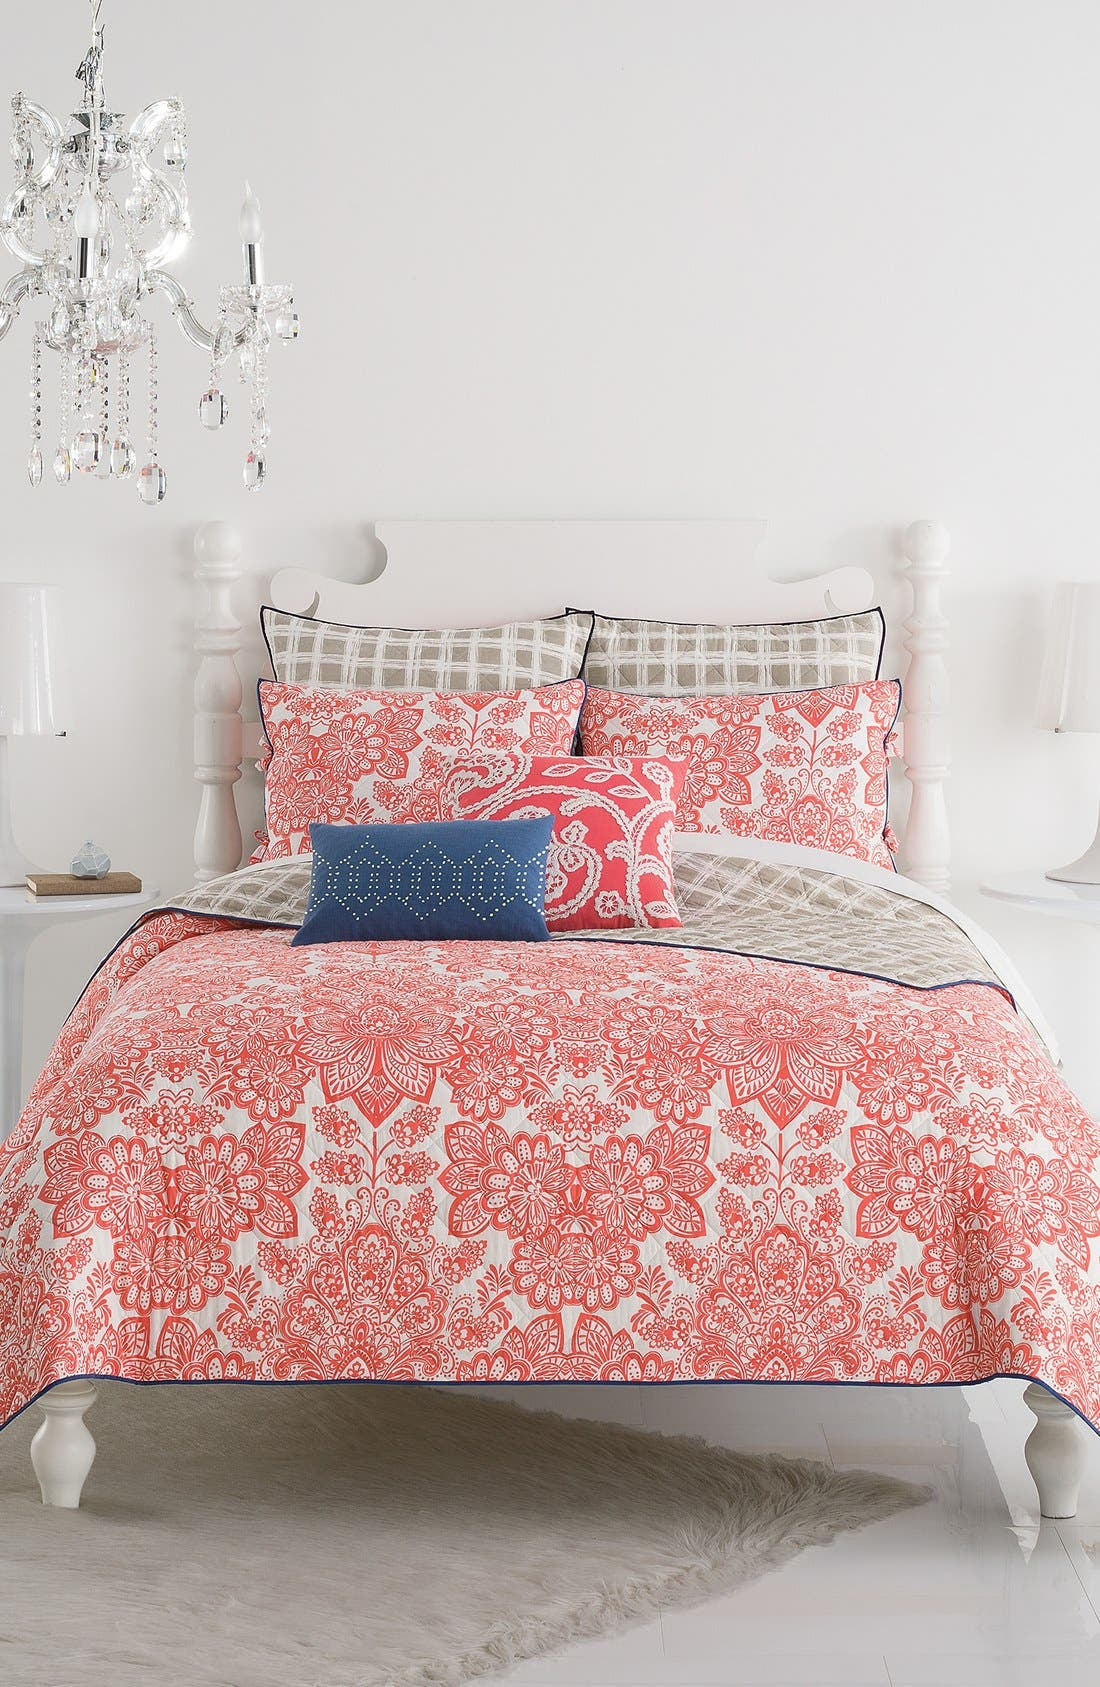 'Ingrid' Quilt,                         Main,                         color, Coral/ Taupe